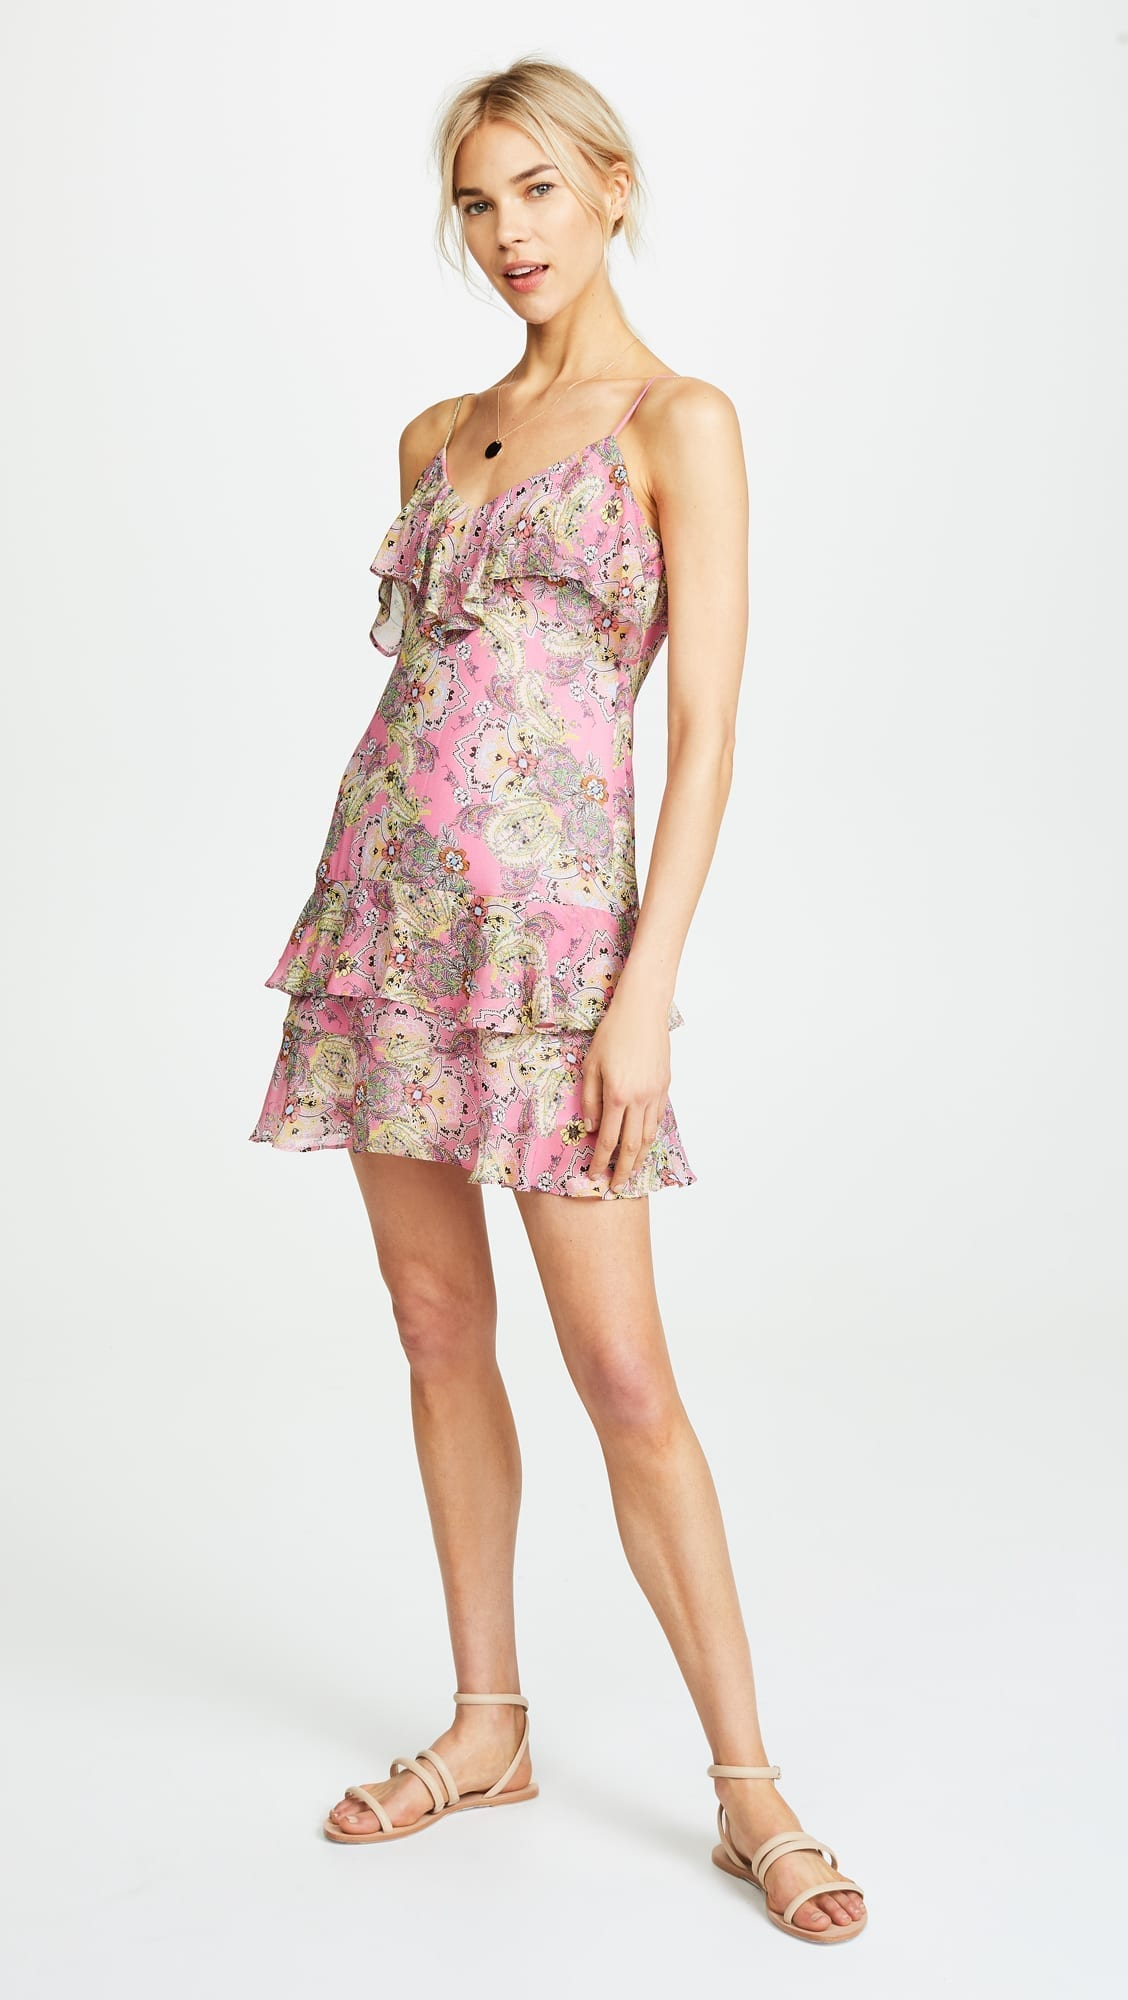 BAILEY44 Daydream Pink / Floral Printed Dress